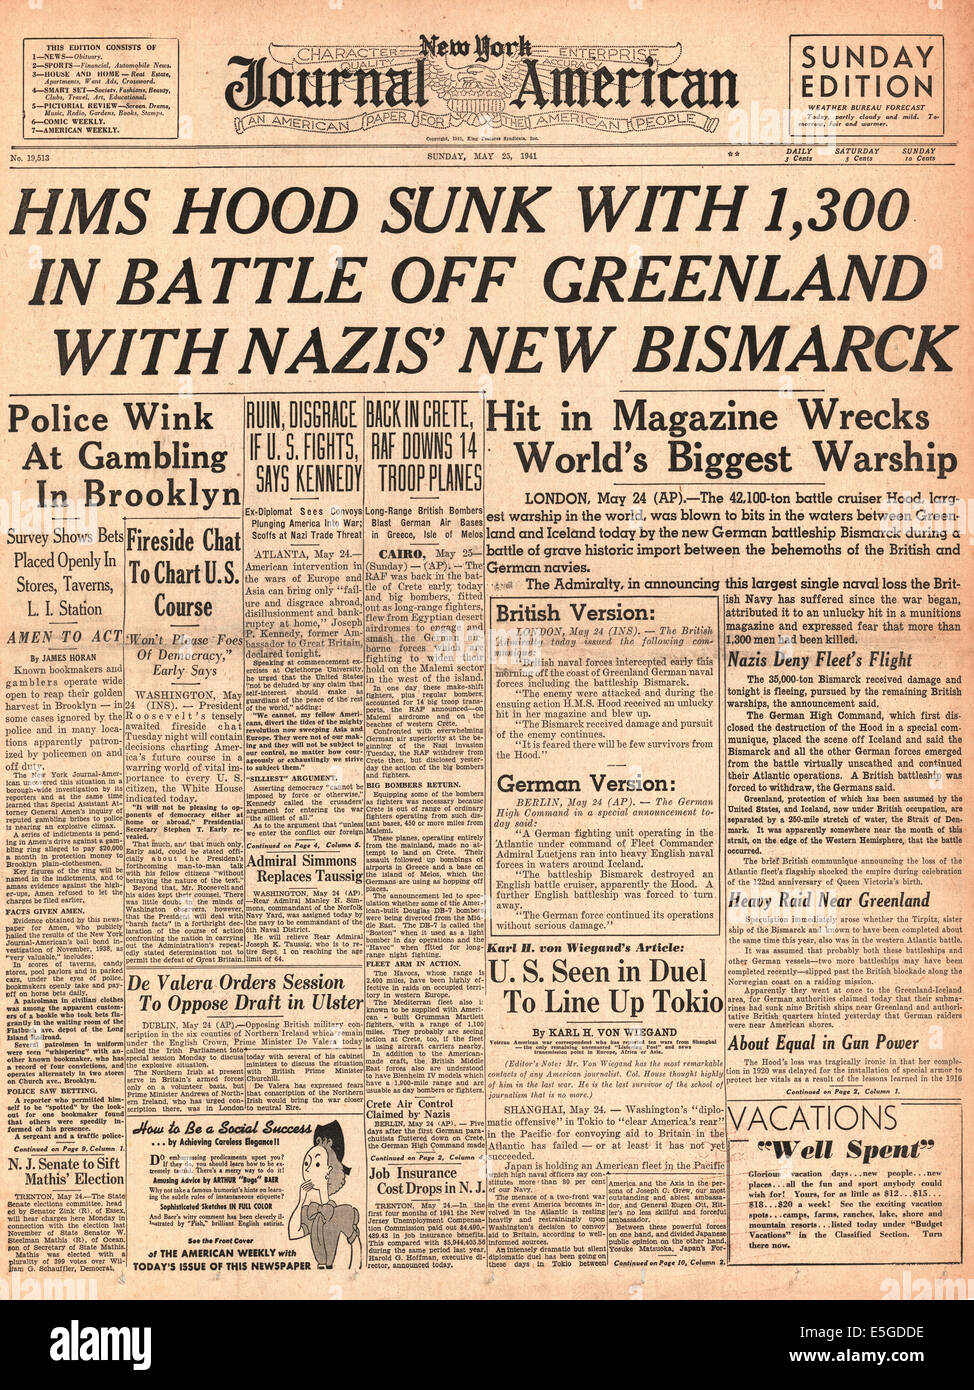 1941 New York Journal American Usa Front Page Reporting